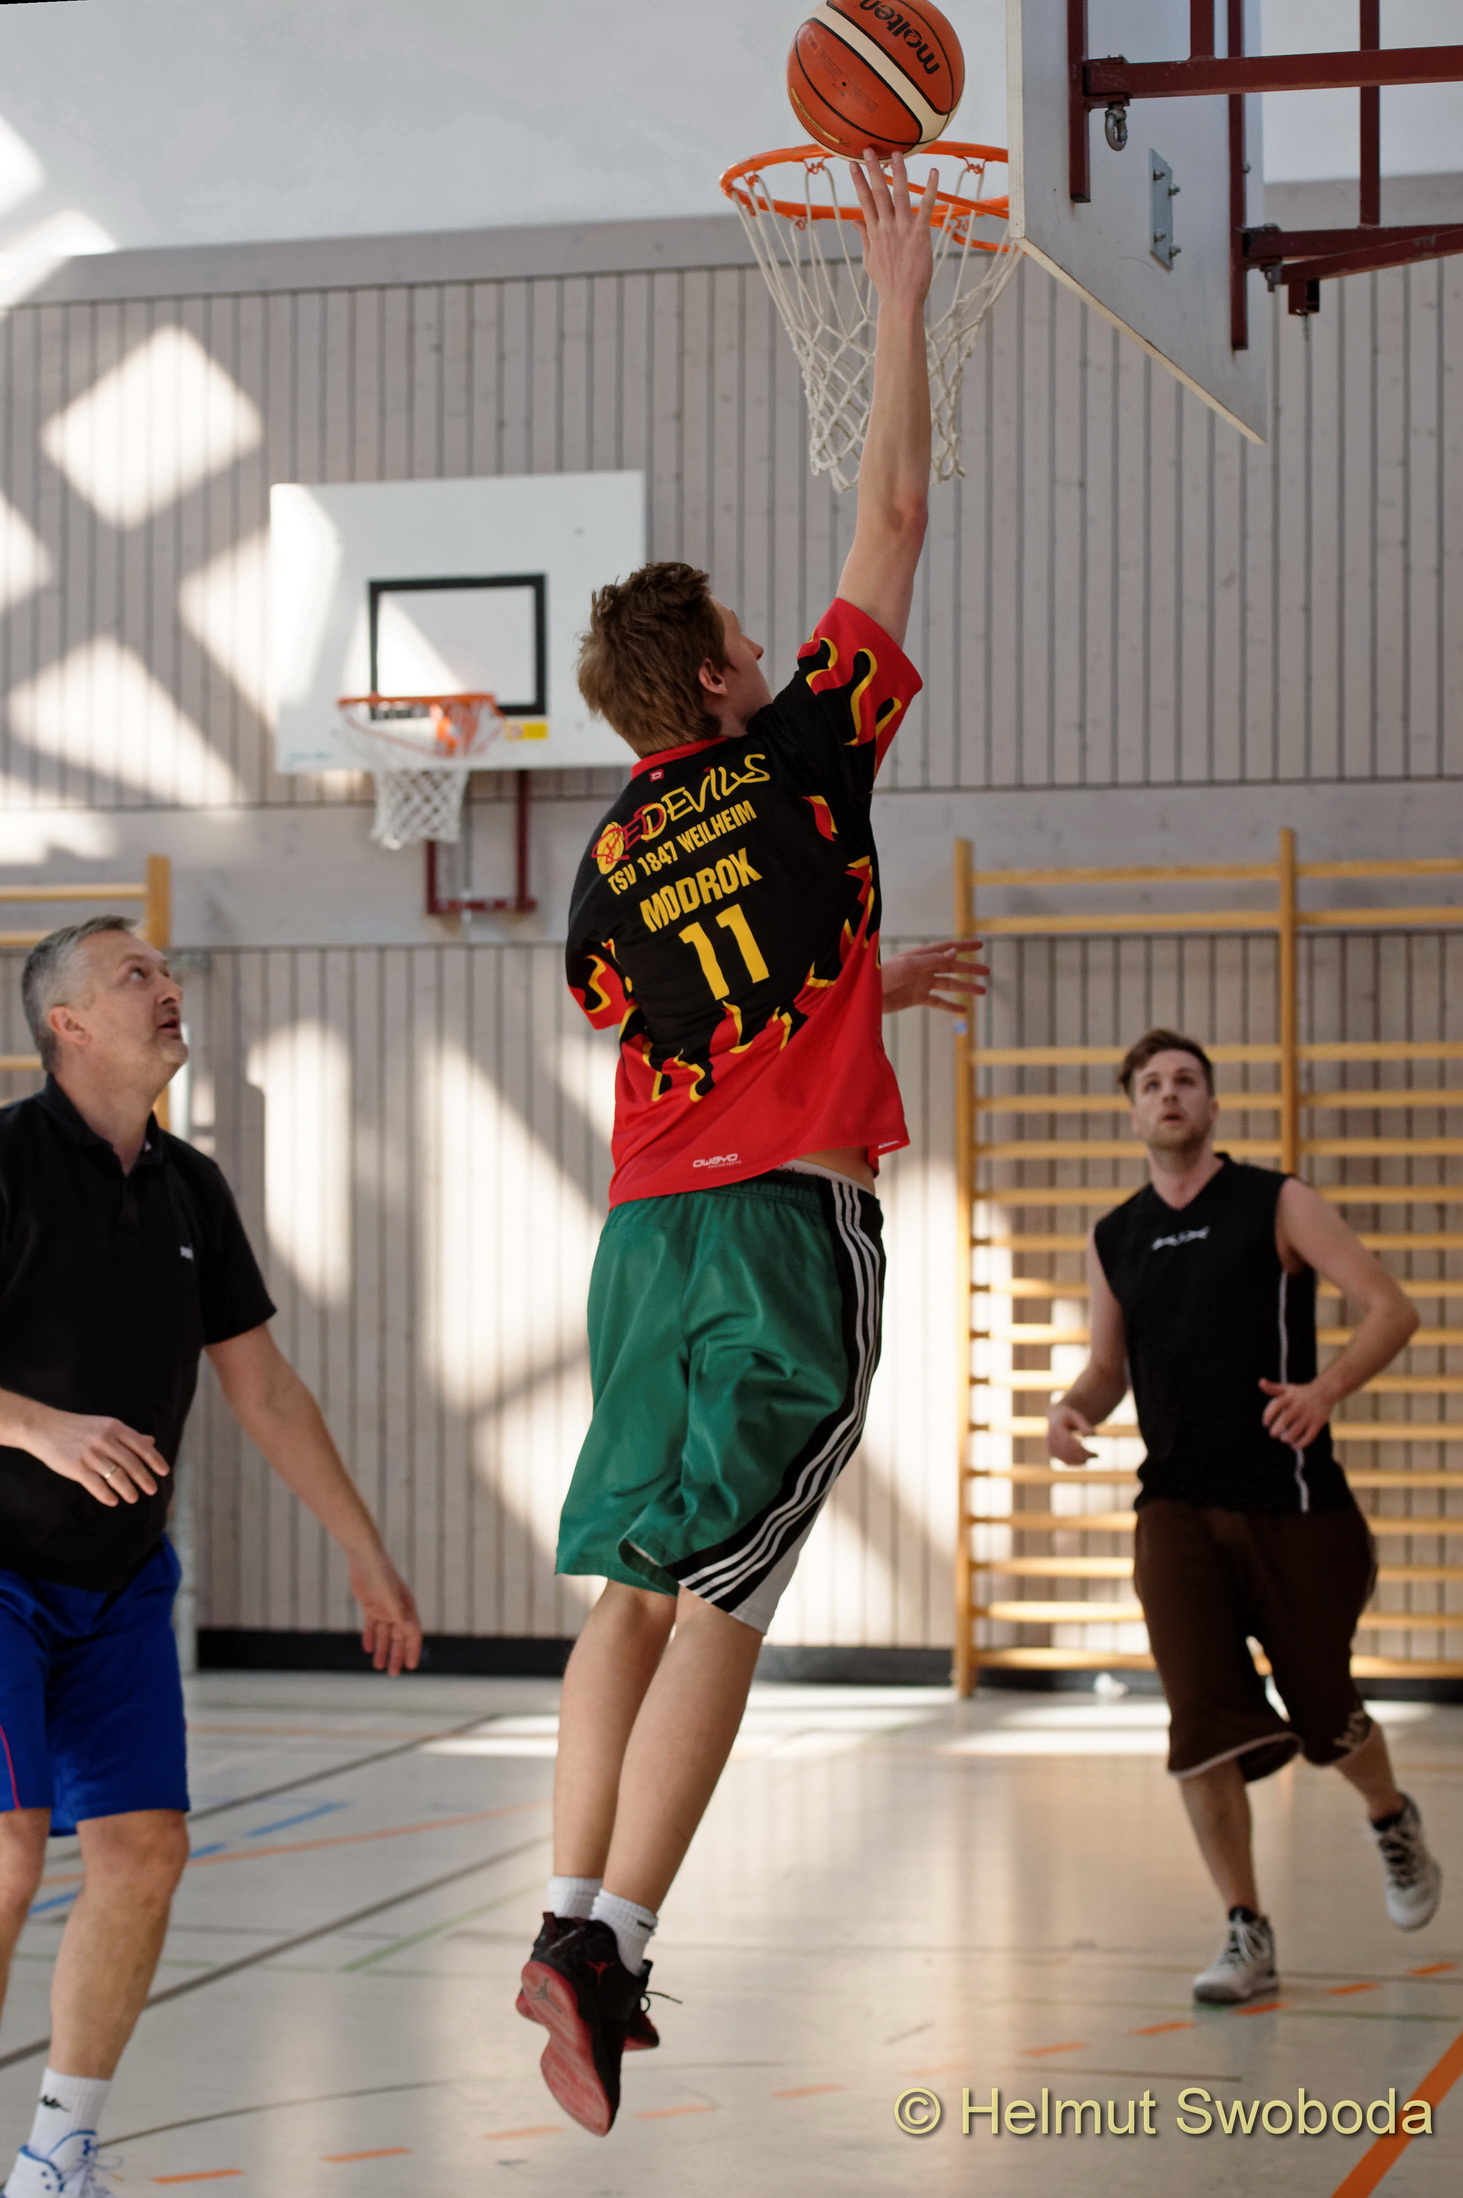 d170402-155139900-100-basketball_weilheim-mixed-turnier_33428692570_o